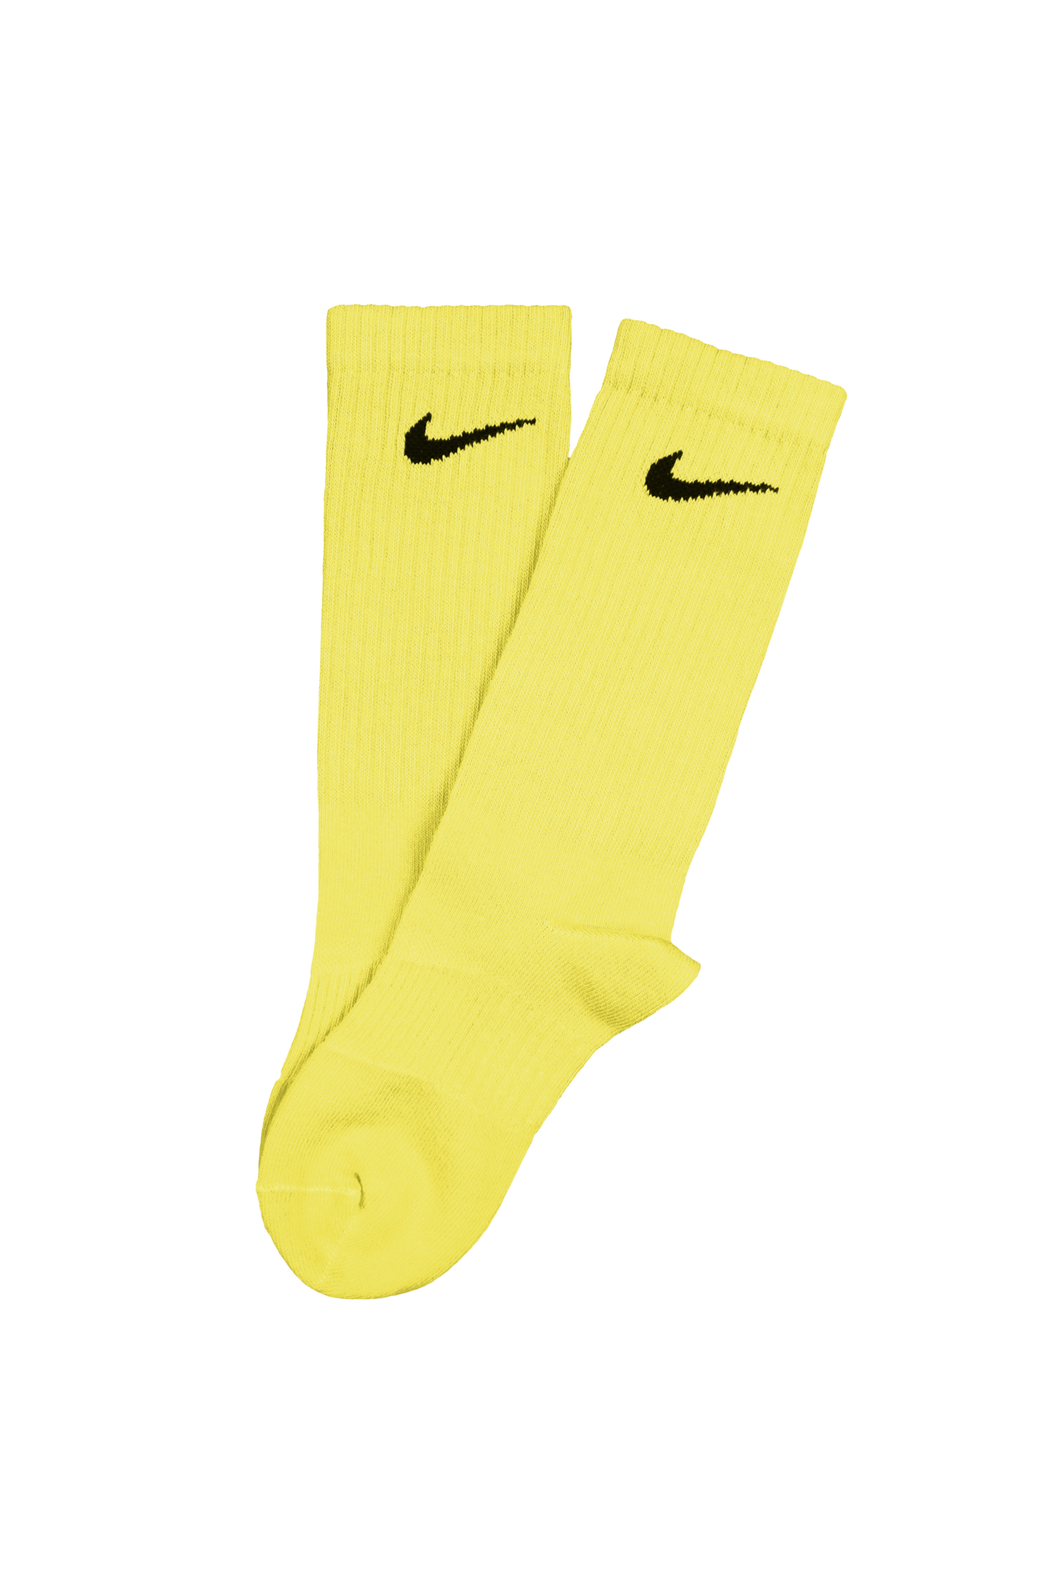 NIKE - YELLOW SOCKS